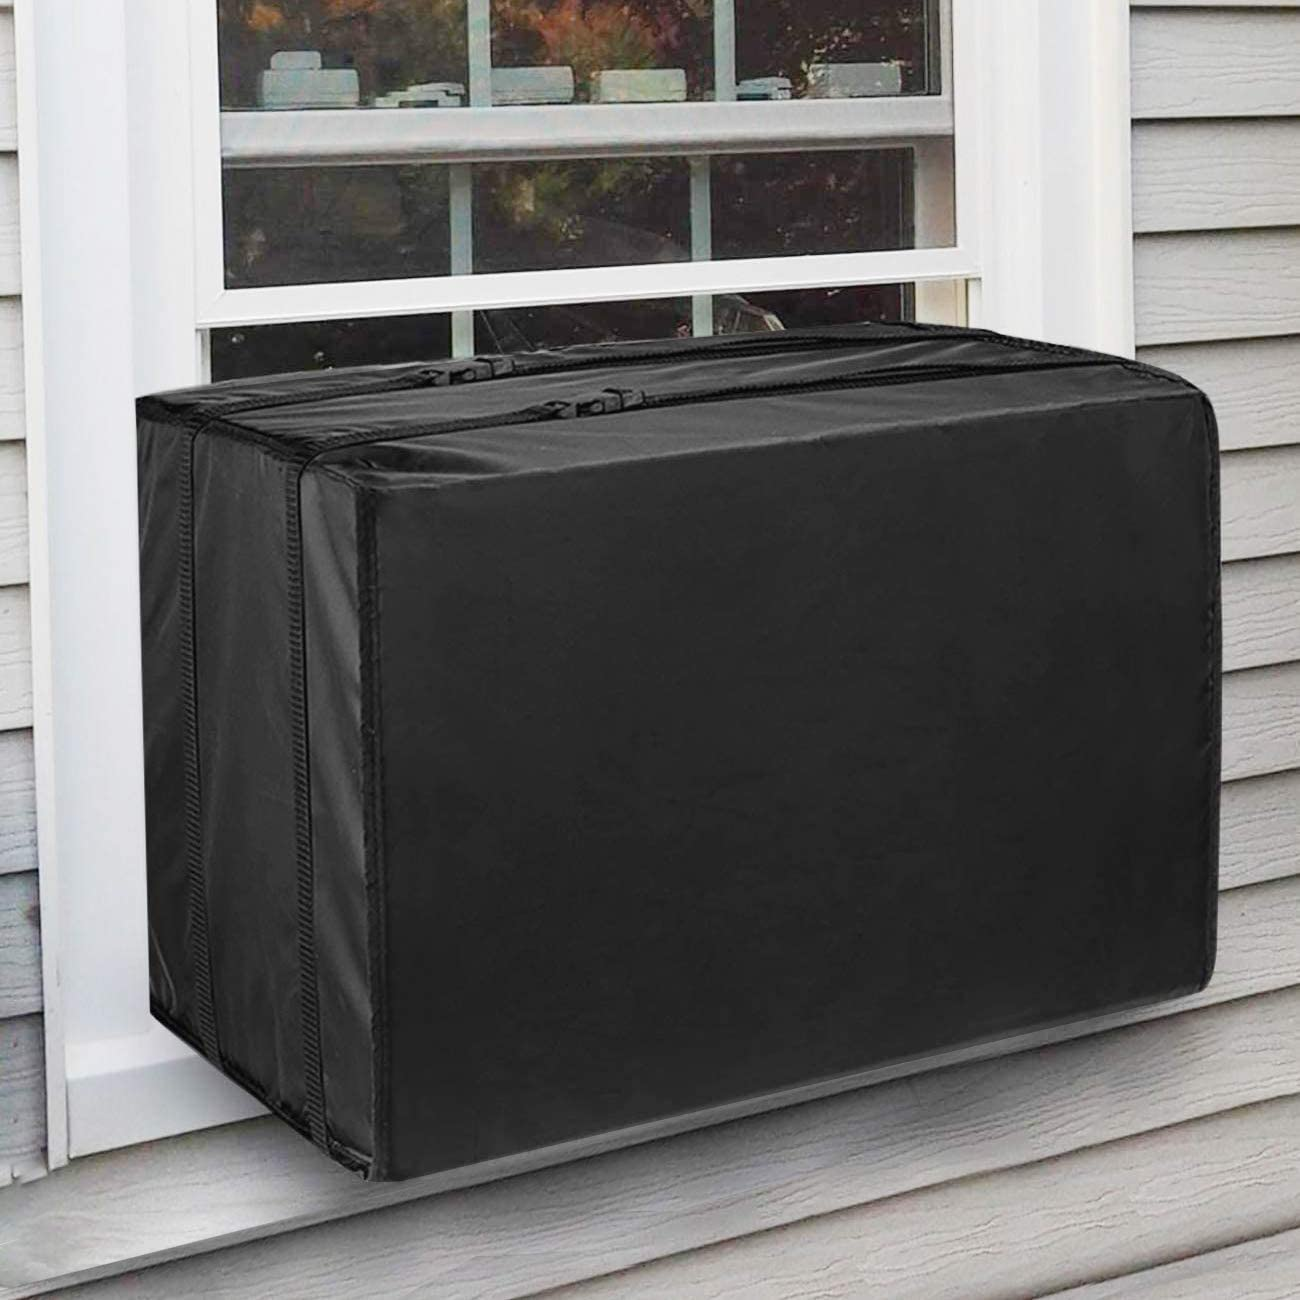 "KylinLucky Window Air Conditioner Unit Cover (17"" W x 13"" H x 12.5"" D)"